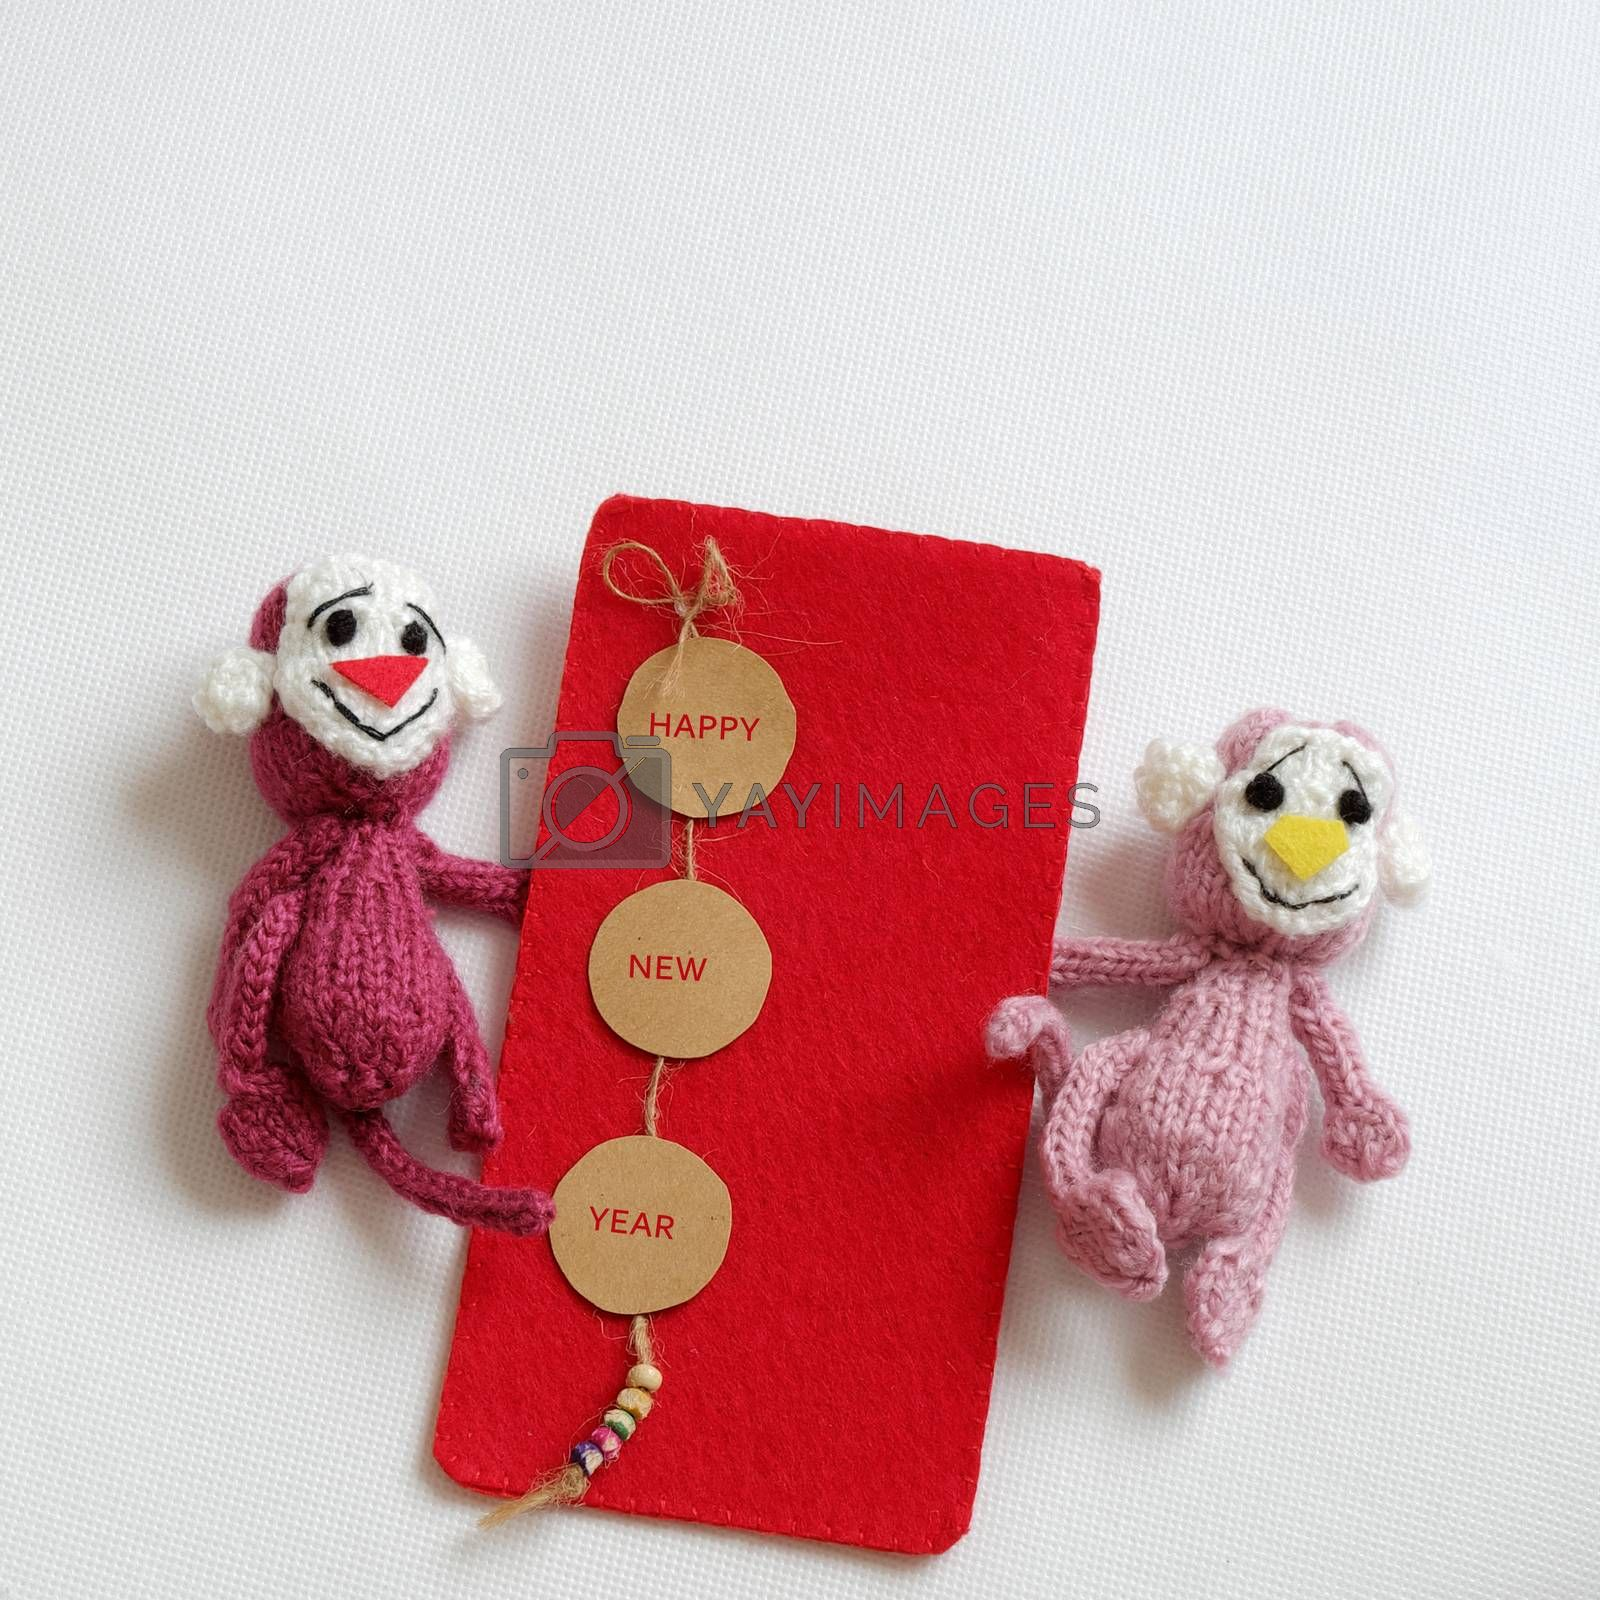 2016, year of monkey, handmade happy new year on white background, knitted monkey, funny stuffed animal, knit flower from yarn, red envelope for lucky money, sign for Vietnam Tet